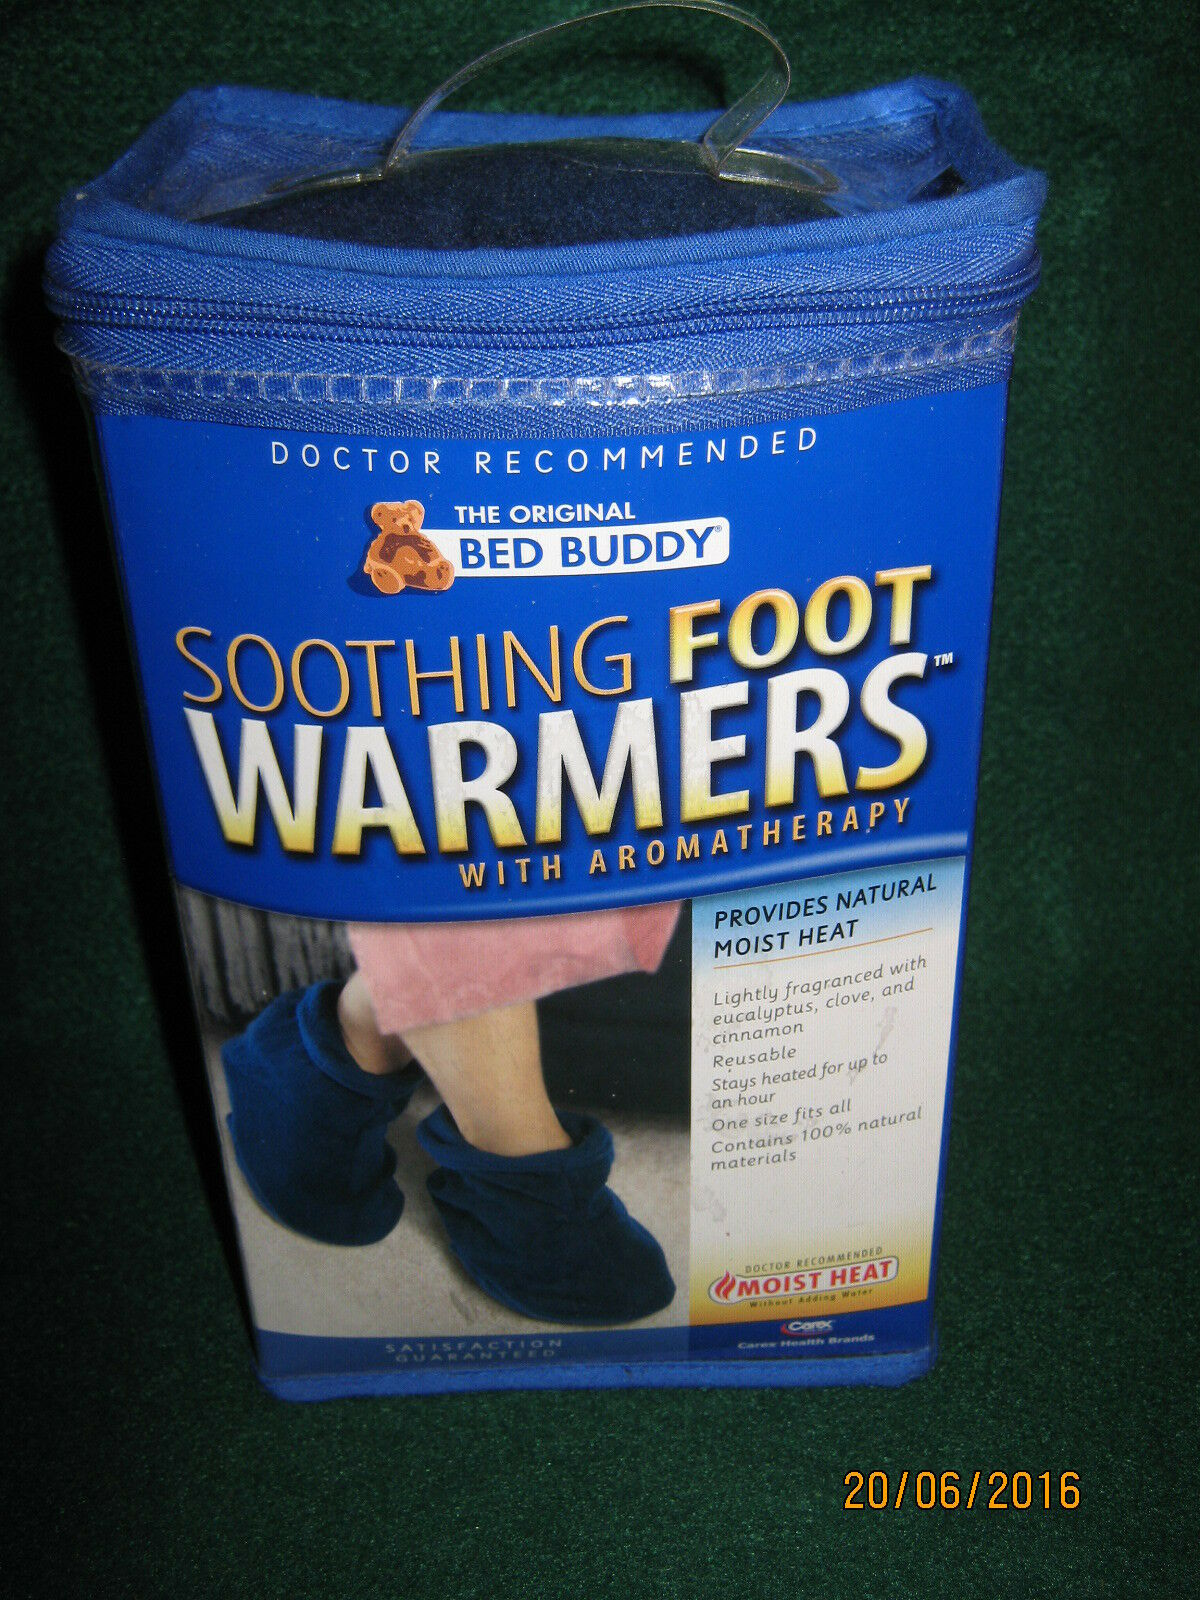 BED BUDDY SOOTHING FOOT WARMERS WITH AROMATHERAPY